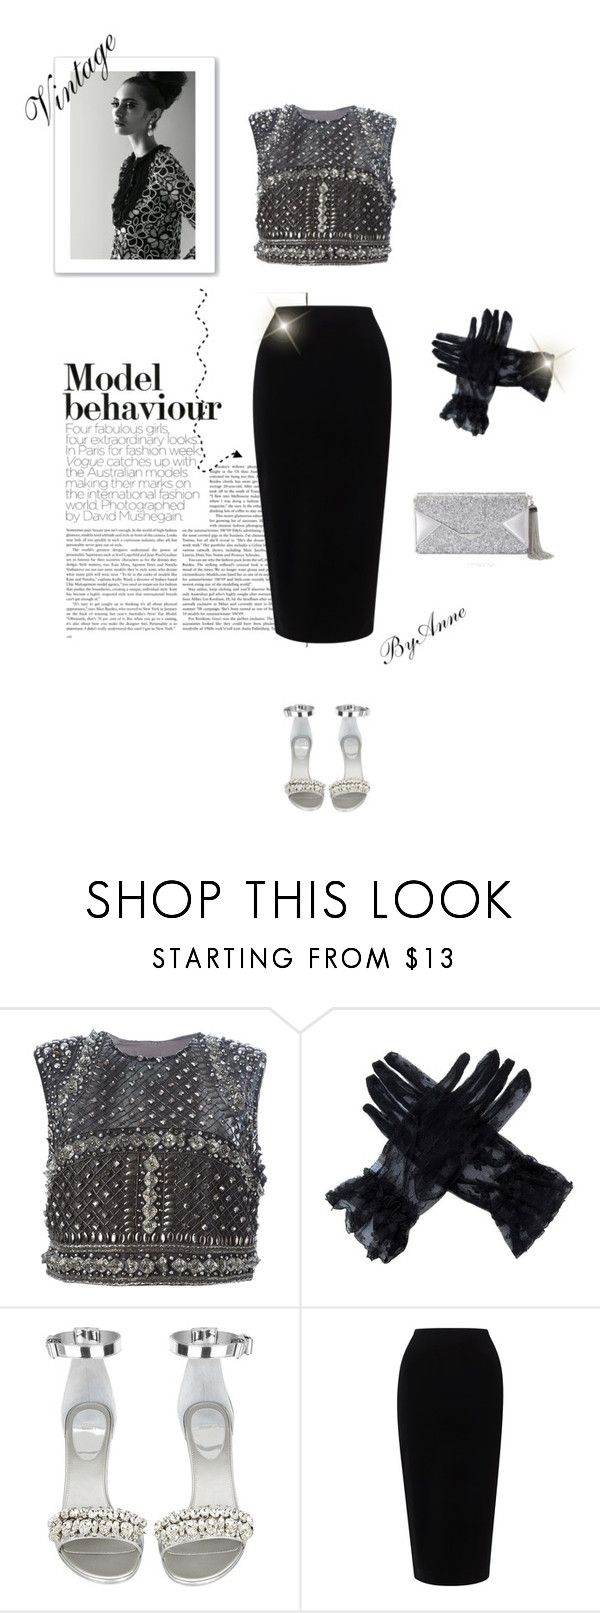 """Vintage Model"" by anne-977 ❤ liked on Polyvore featuring Alberta Ferretti, Givenchy, Tome, BCBGMAXAZRIA, vintage, VintageInspired, AlbertaFerretti and 2016"